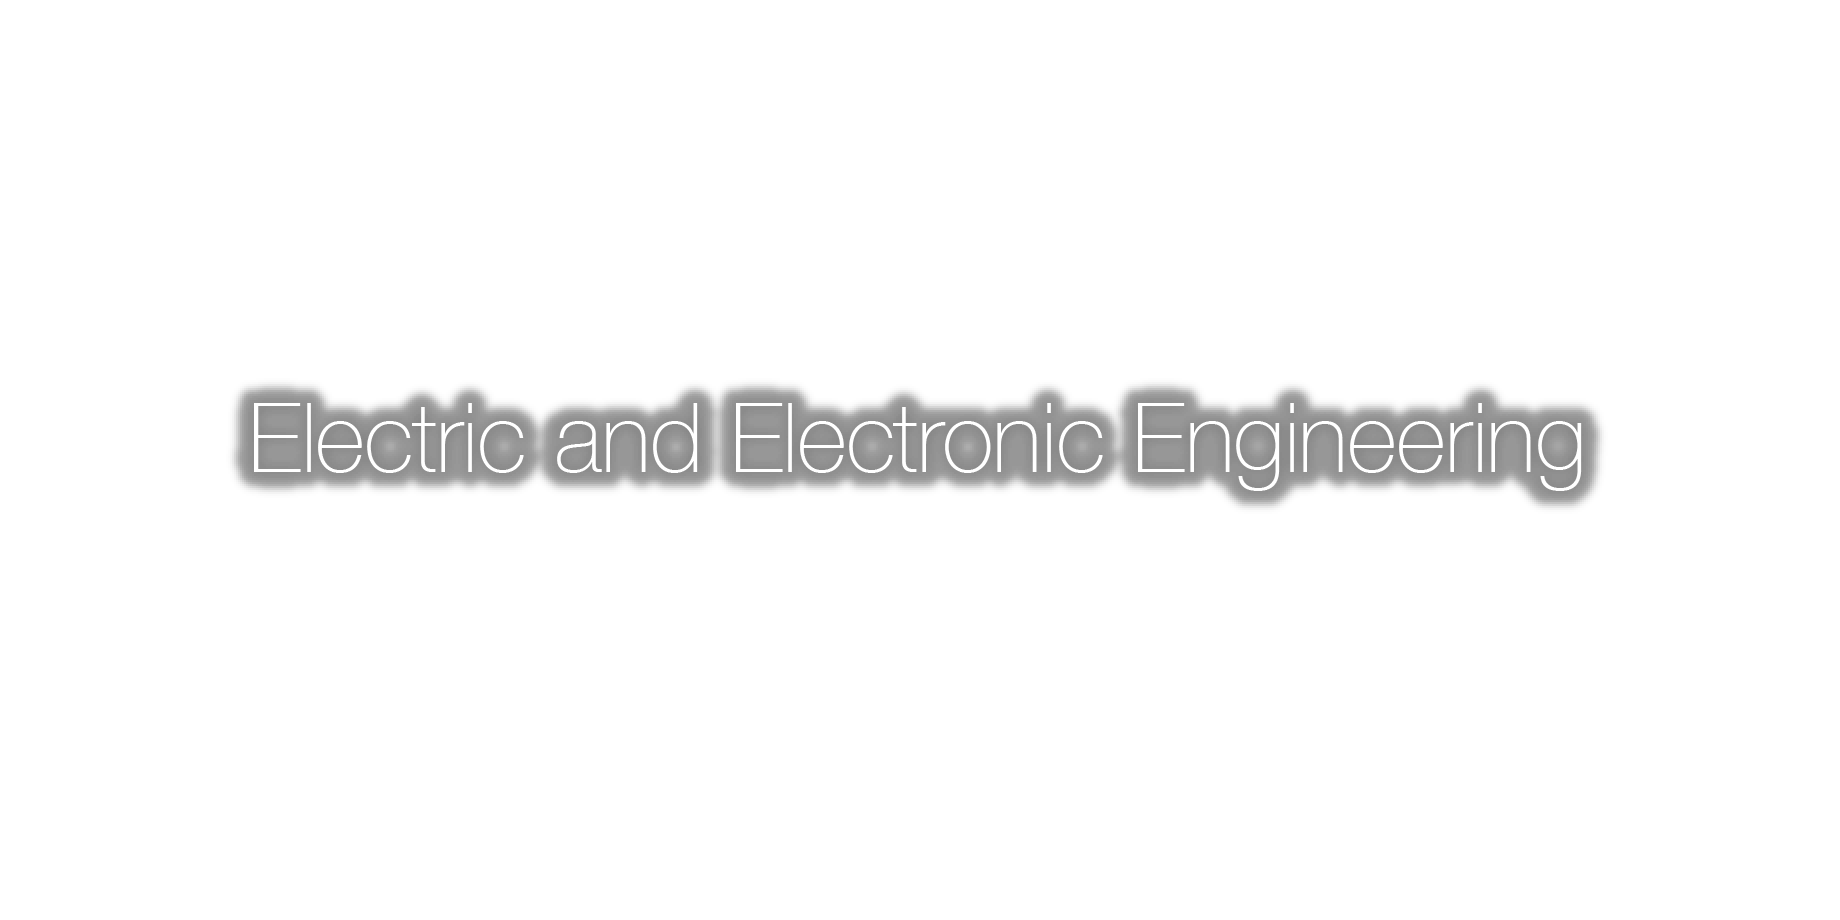 Electric and Electronic Engineering